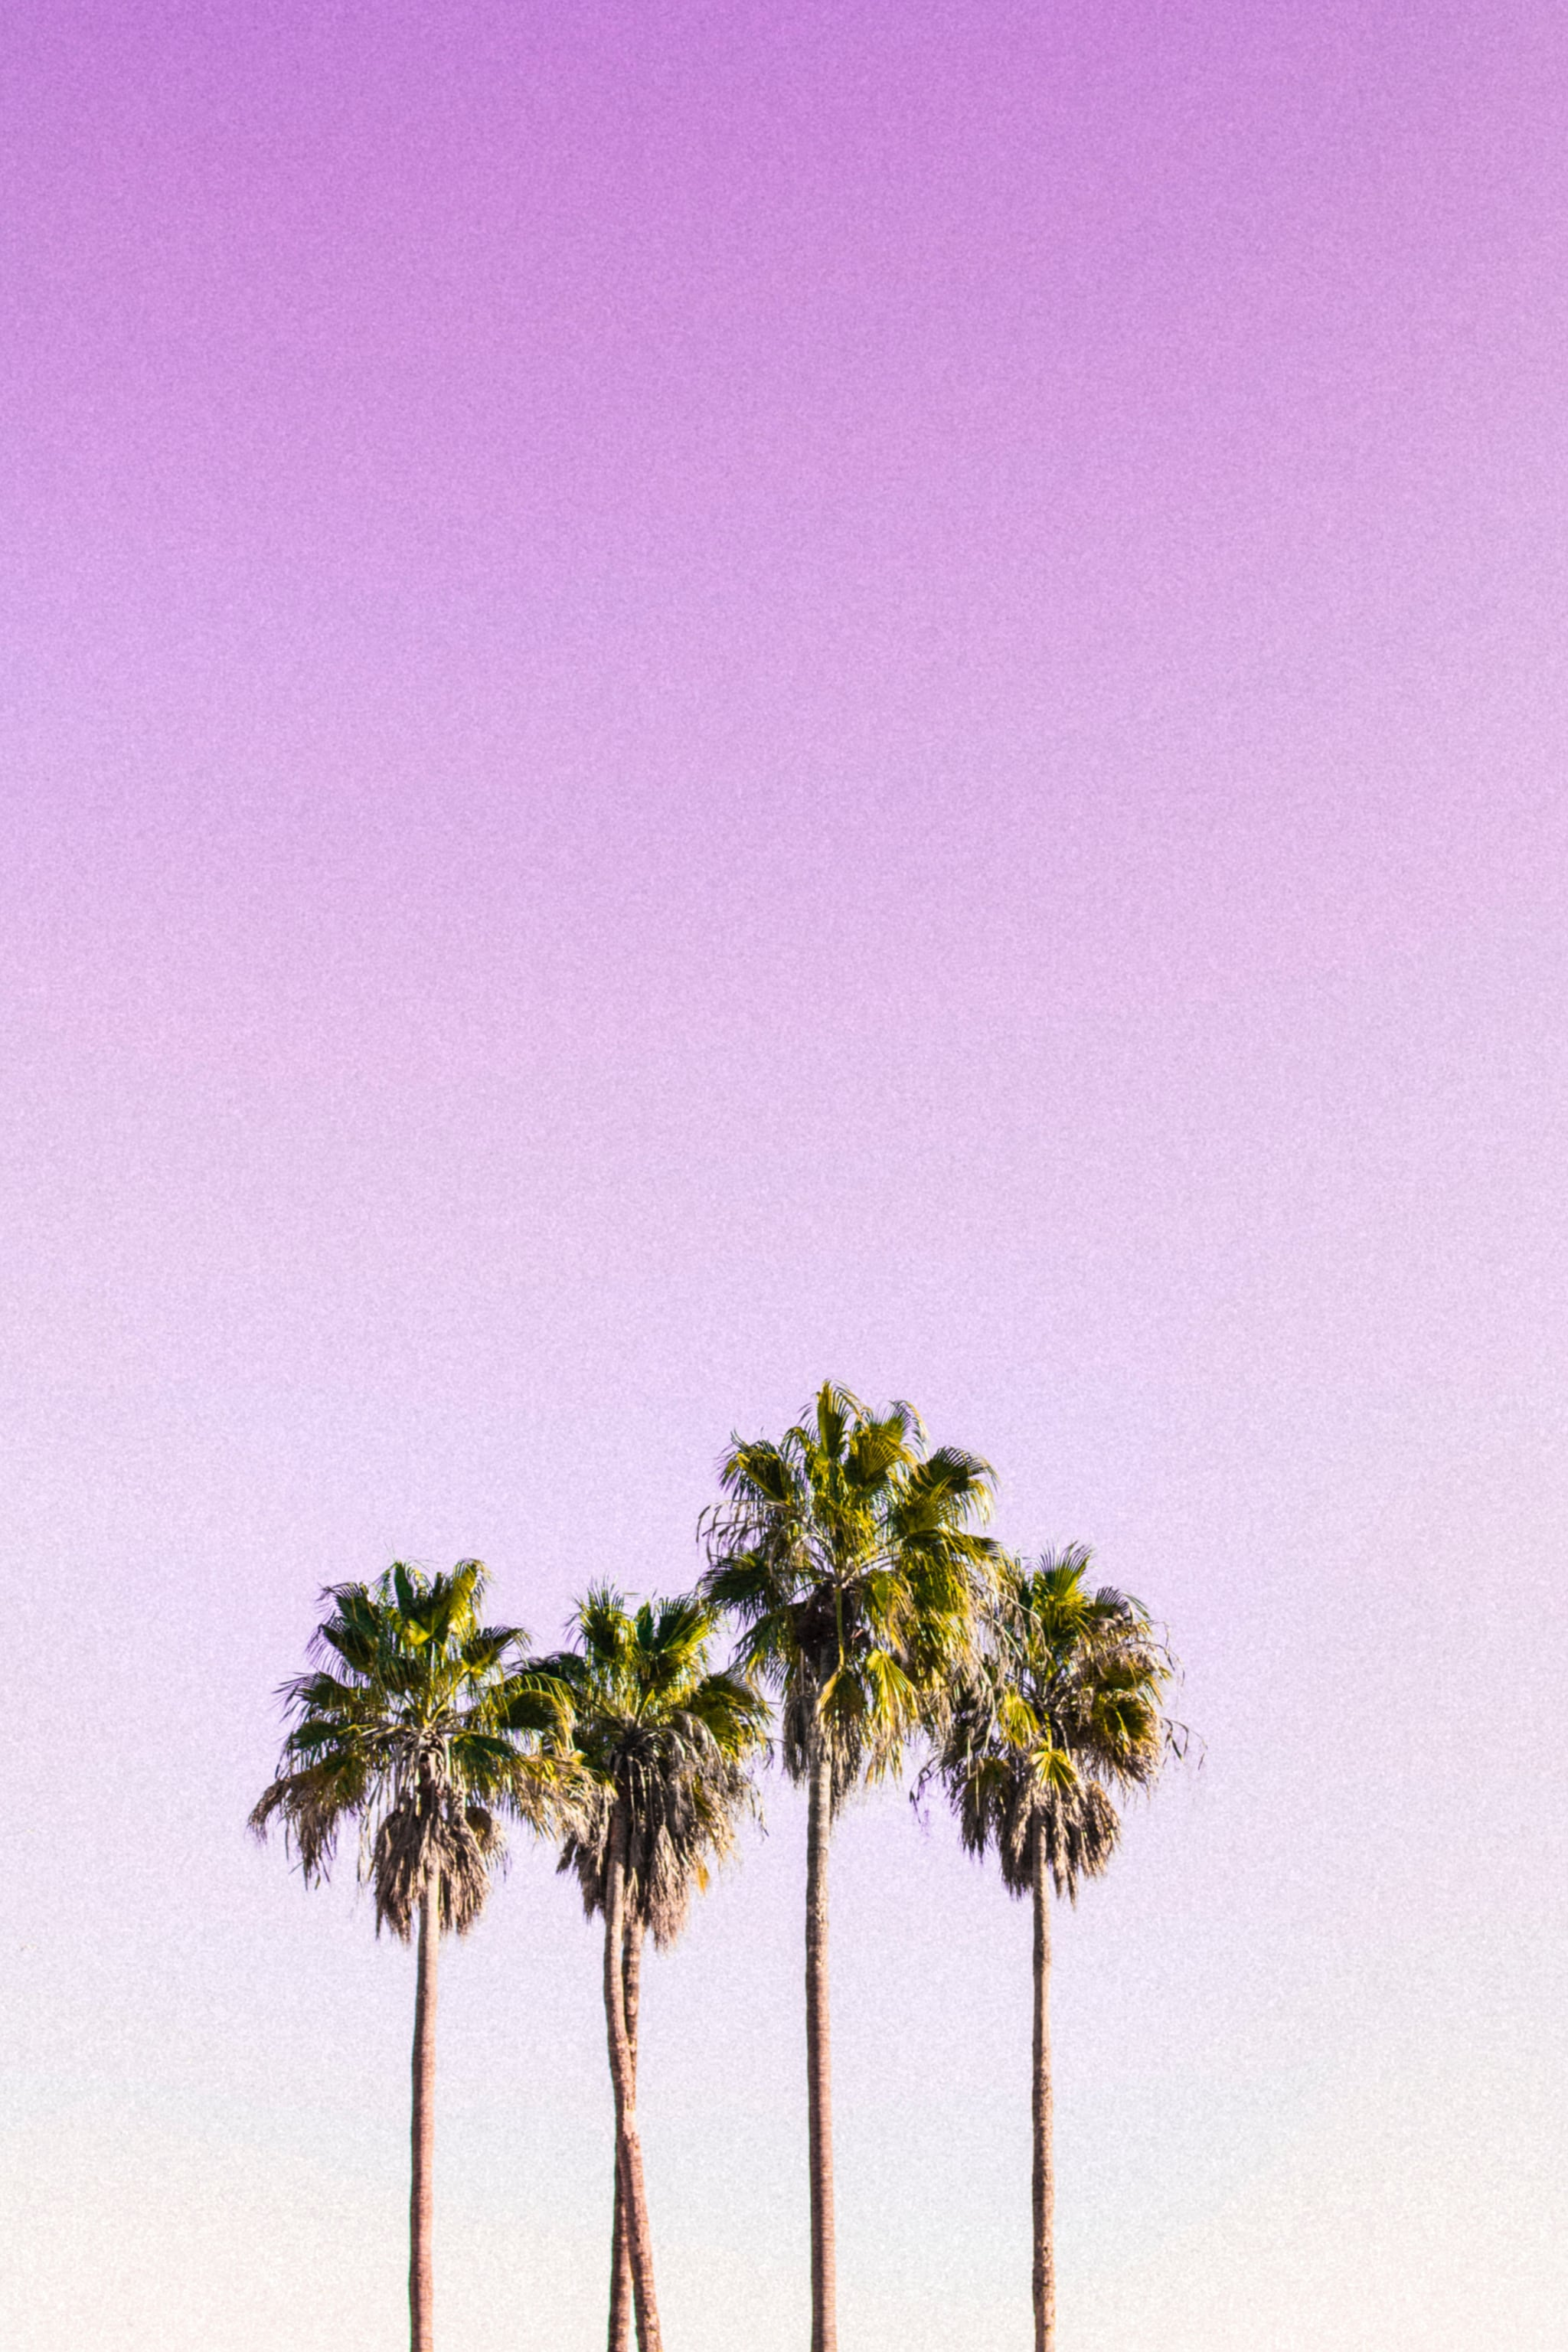 Best Ios 14 Wallpaper Ideas For Your Home Screen Aesthetic Popsugar Tech